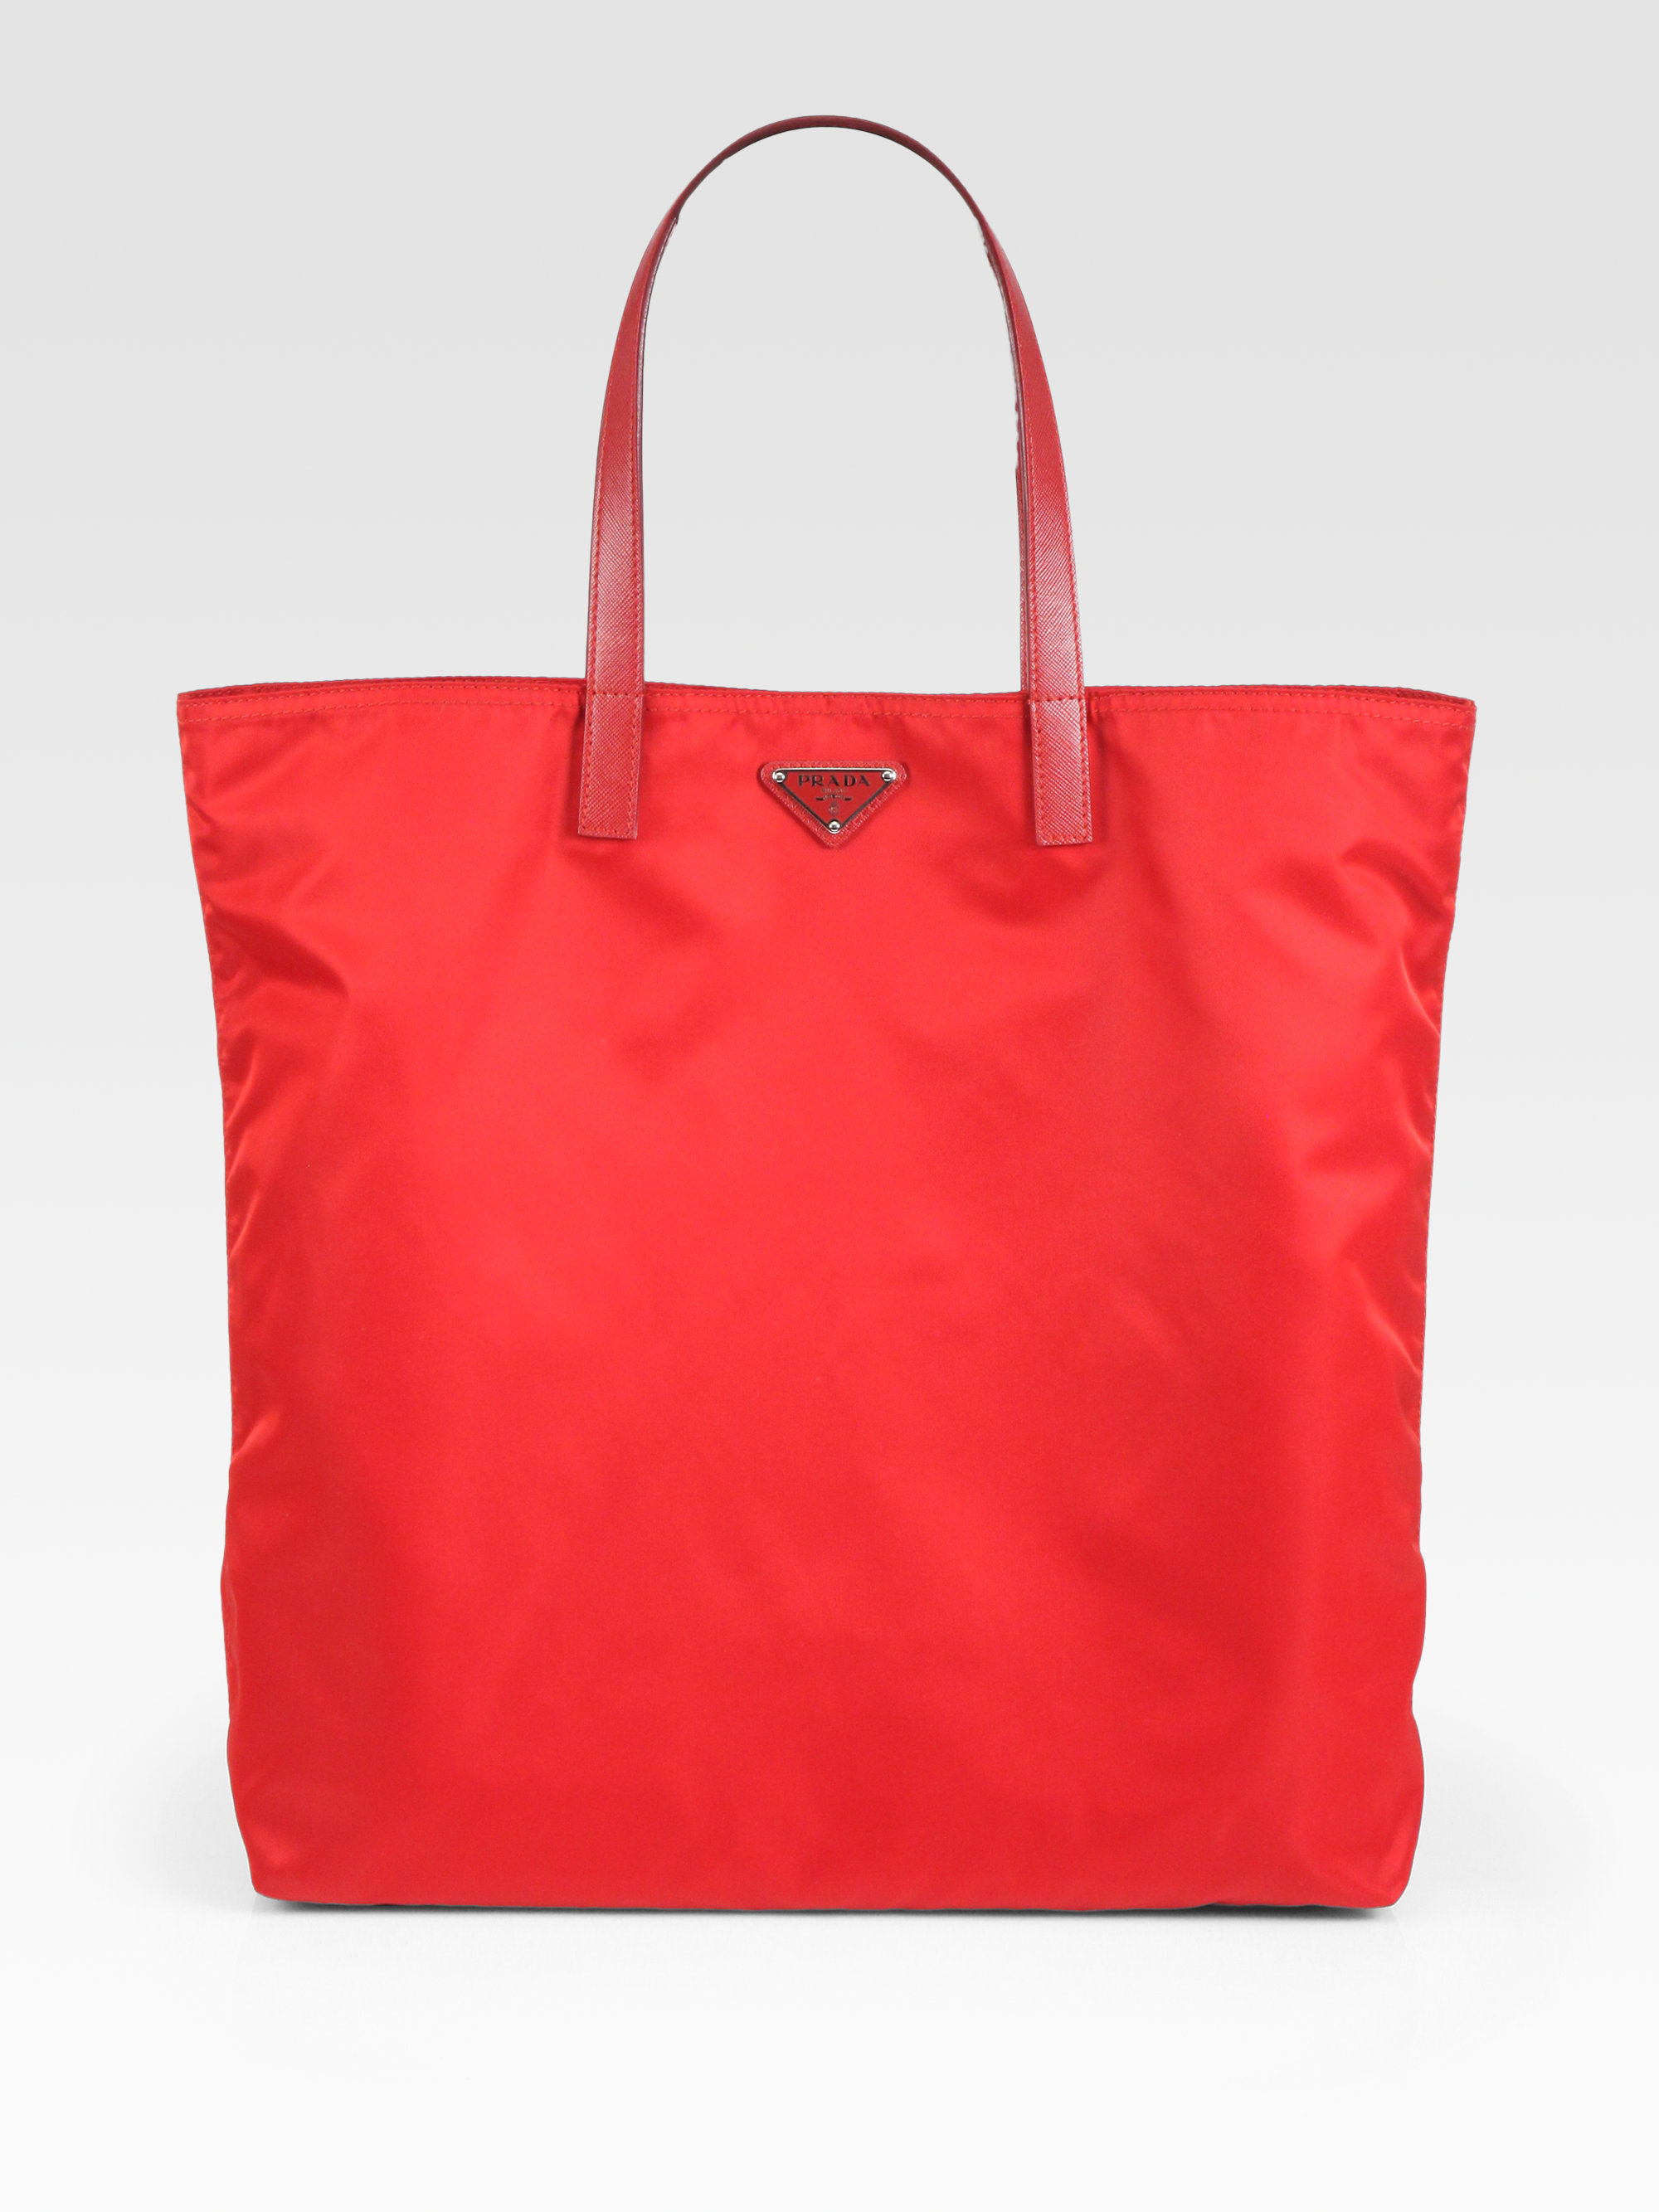 prada vela tote in red